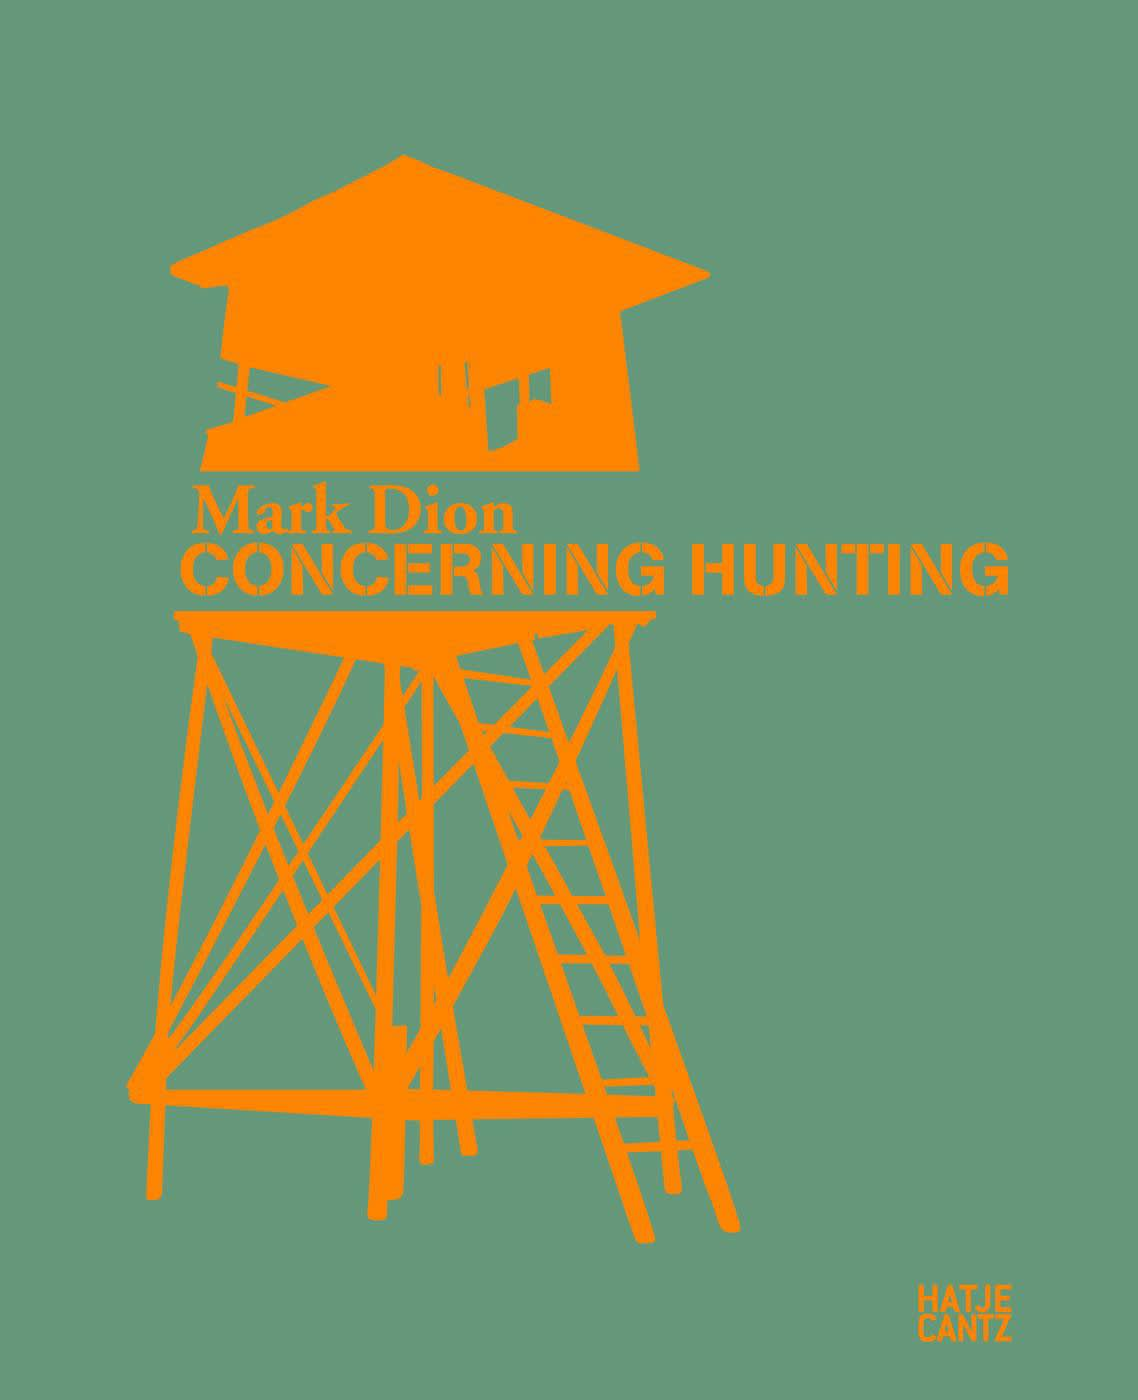 "Exhibition catalogue cover. Bright orange silhouette of deer blind on green background. Orange text: ""Mark Dion, Concerning Hunting, Hatje Cantz"""